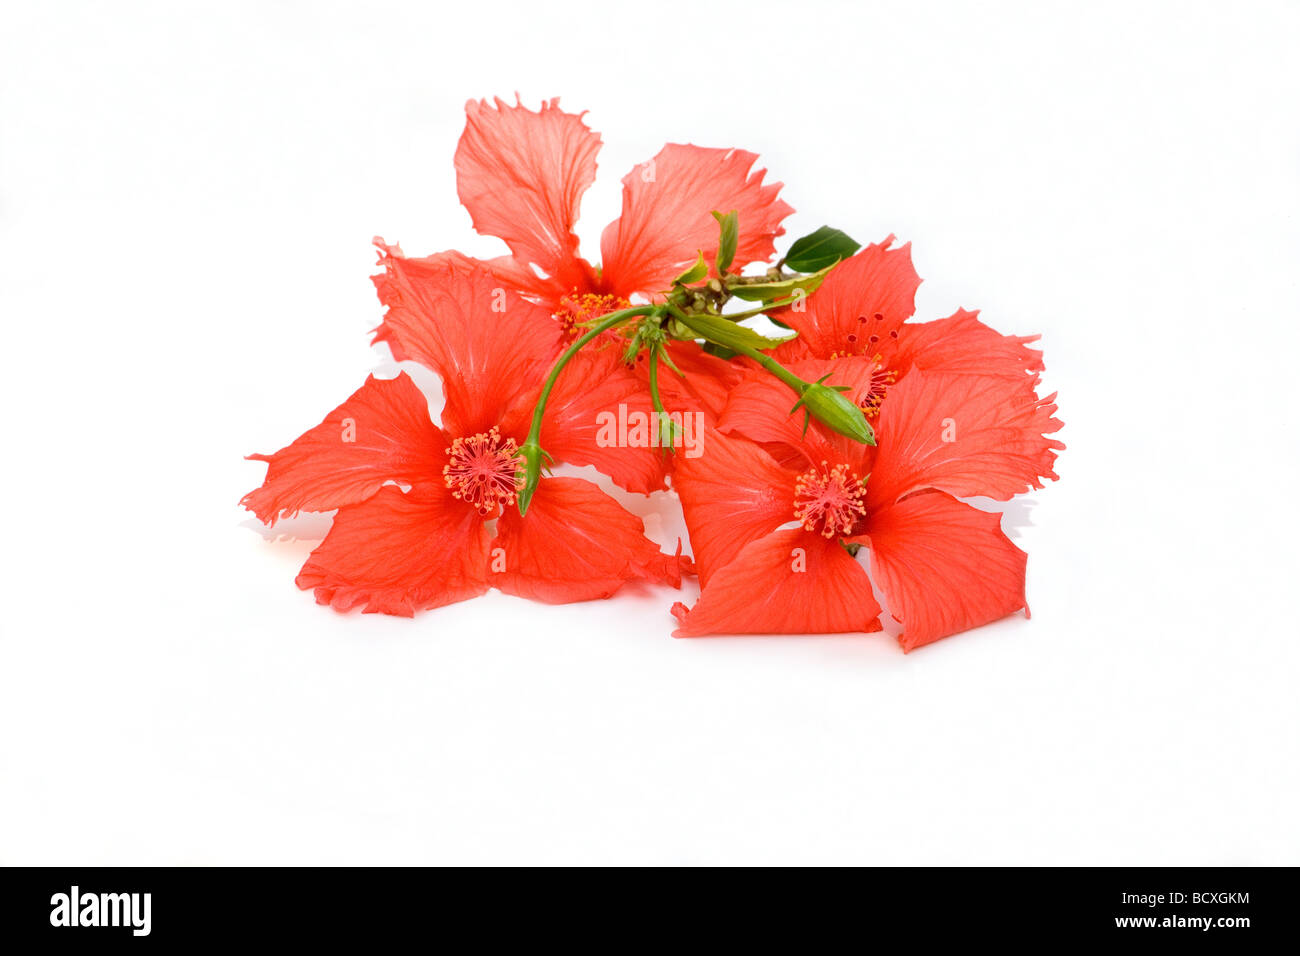 Buds of hibiscus flower stock photos buds of hibiscus flower stock close up of red hibiscus flower on white background stock image izmirmasajfo